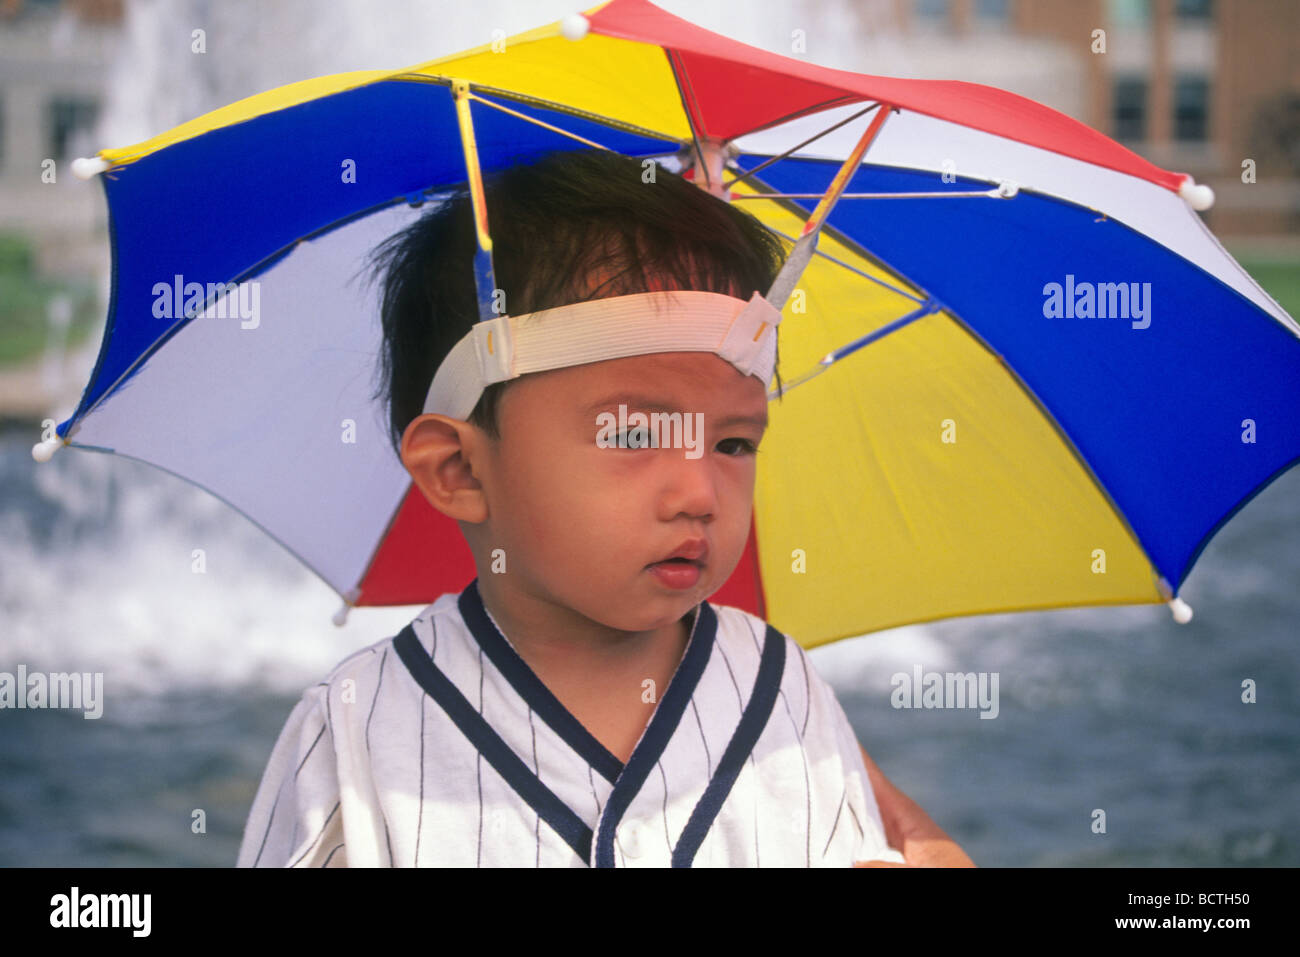 deeb55a58 A young Japanese boy wearing an umbrella hat at the Biosphere ...